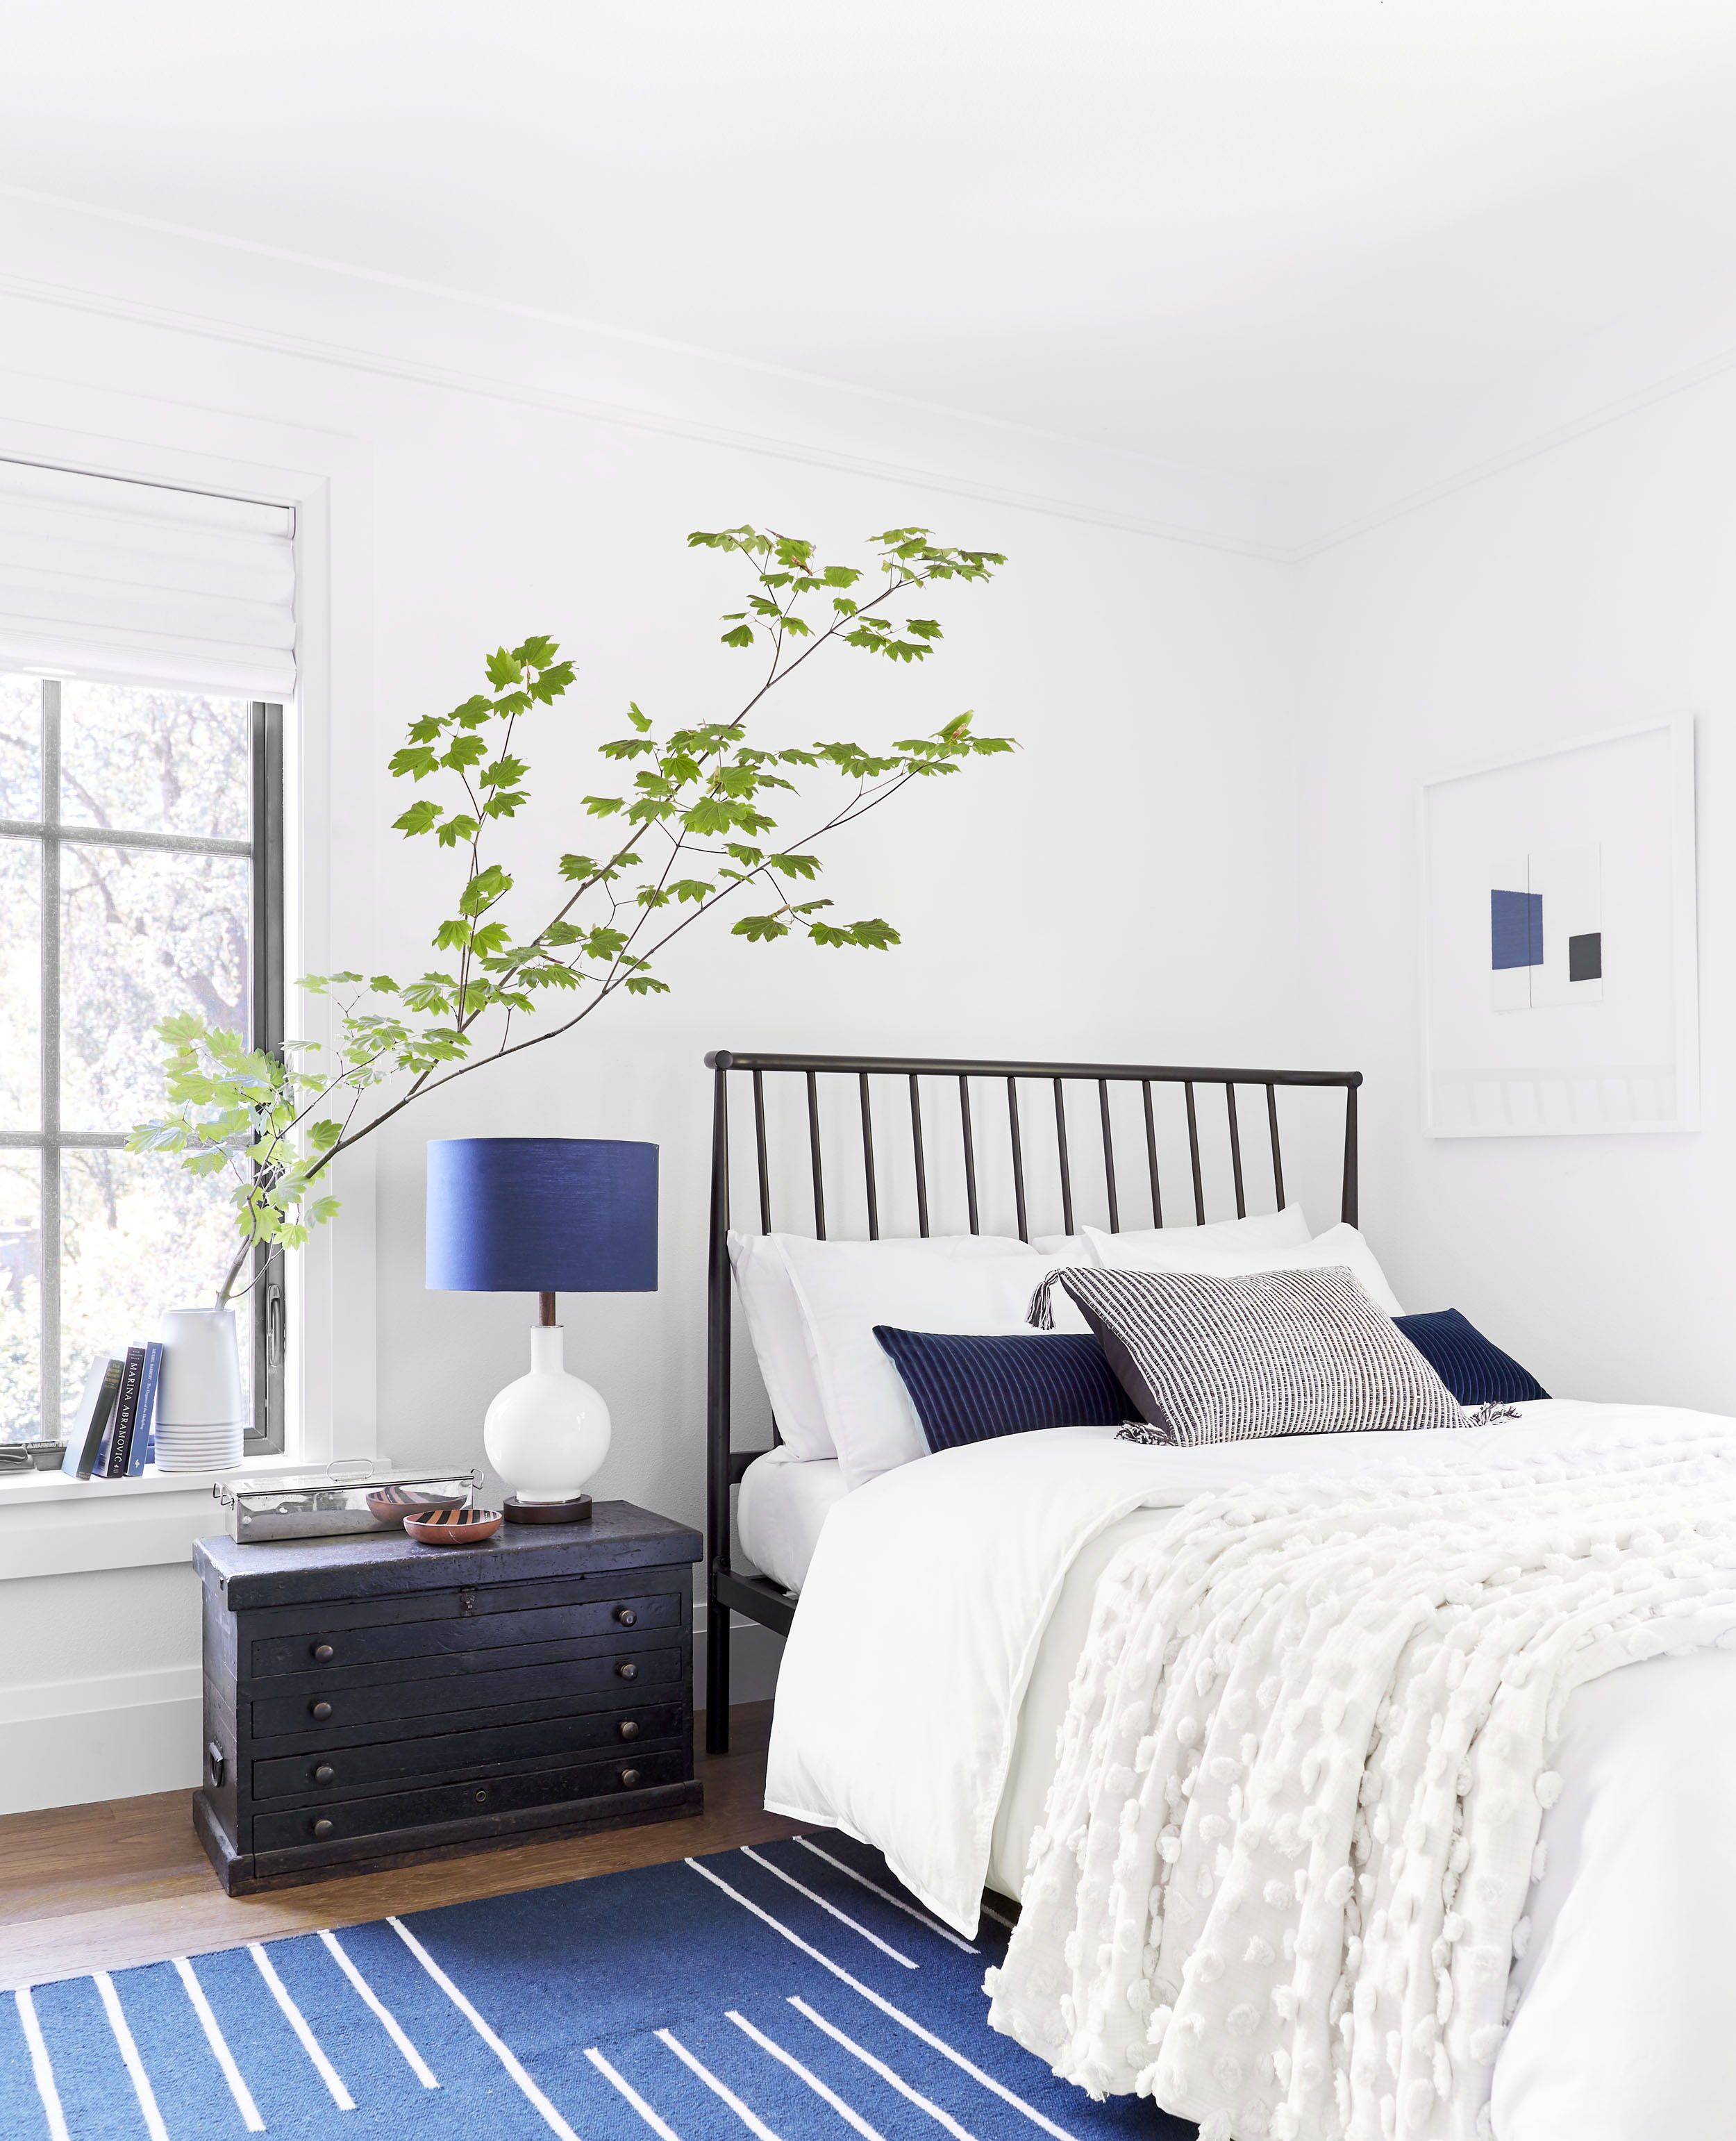 14 Rules To Follow To Design Style The Perfect Bedroom Small Guest Bedroom Guest Bedroom Decor Bedroom Layouts